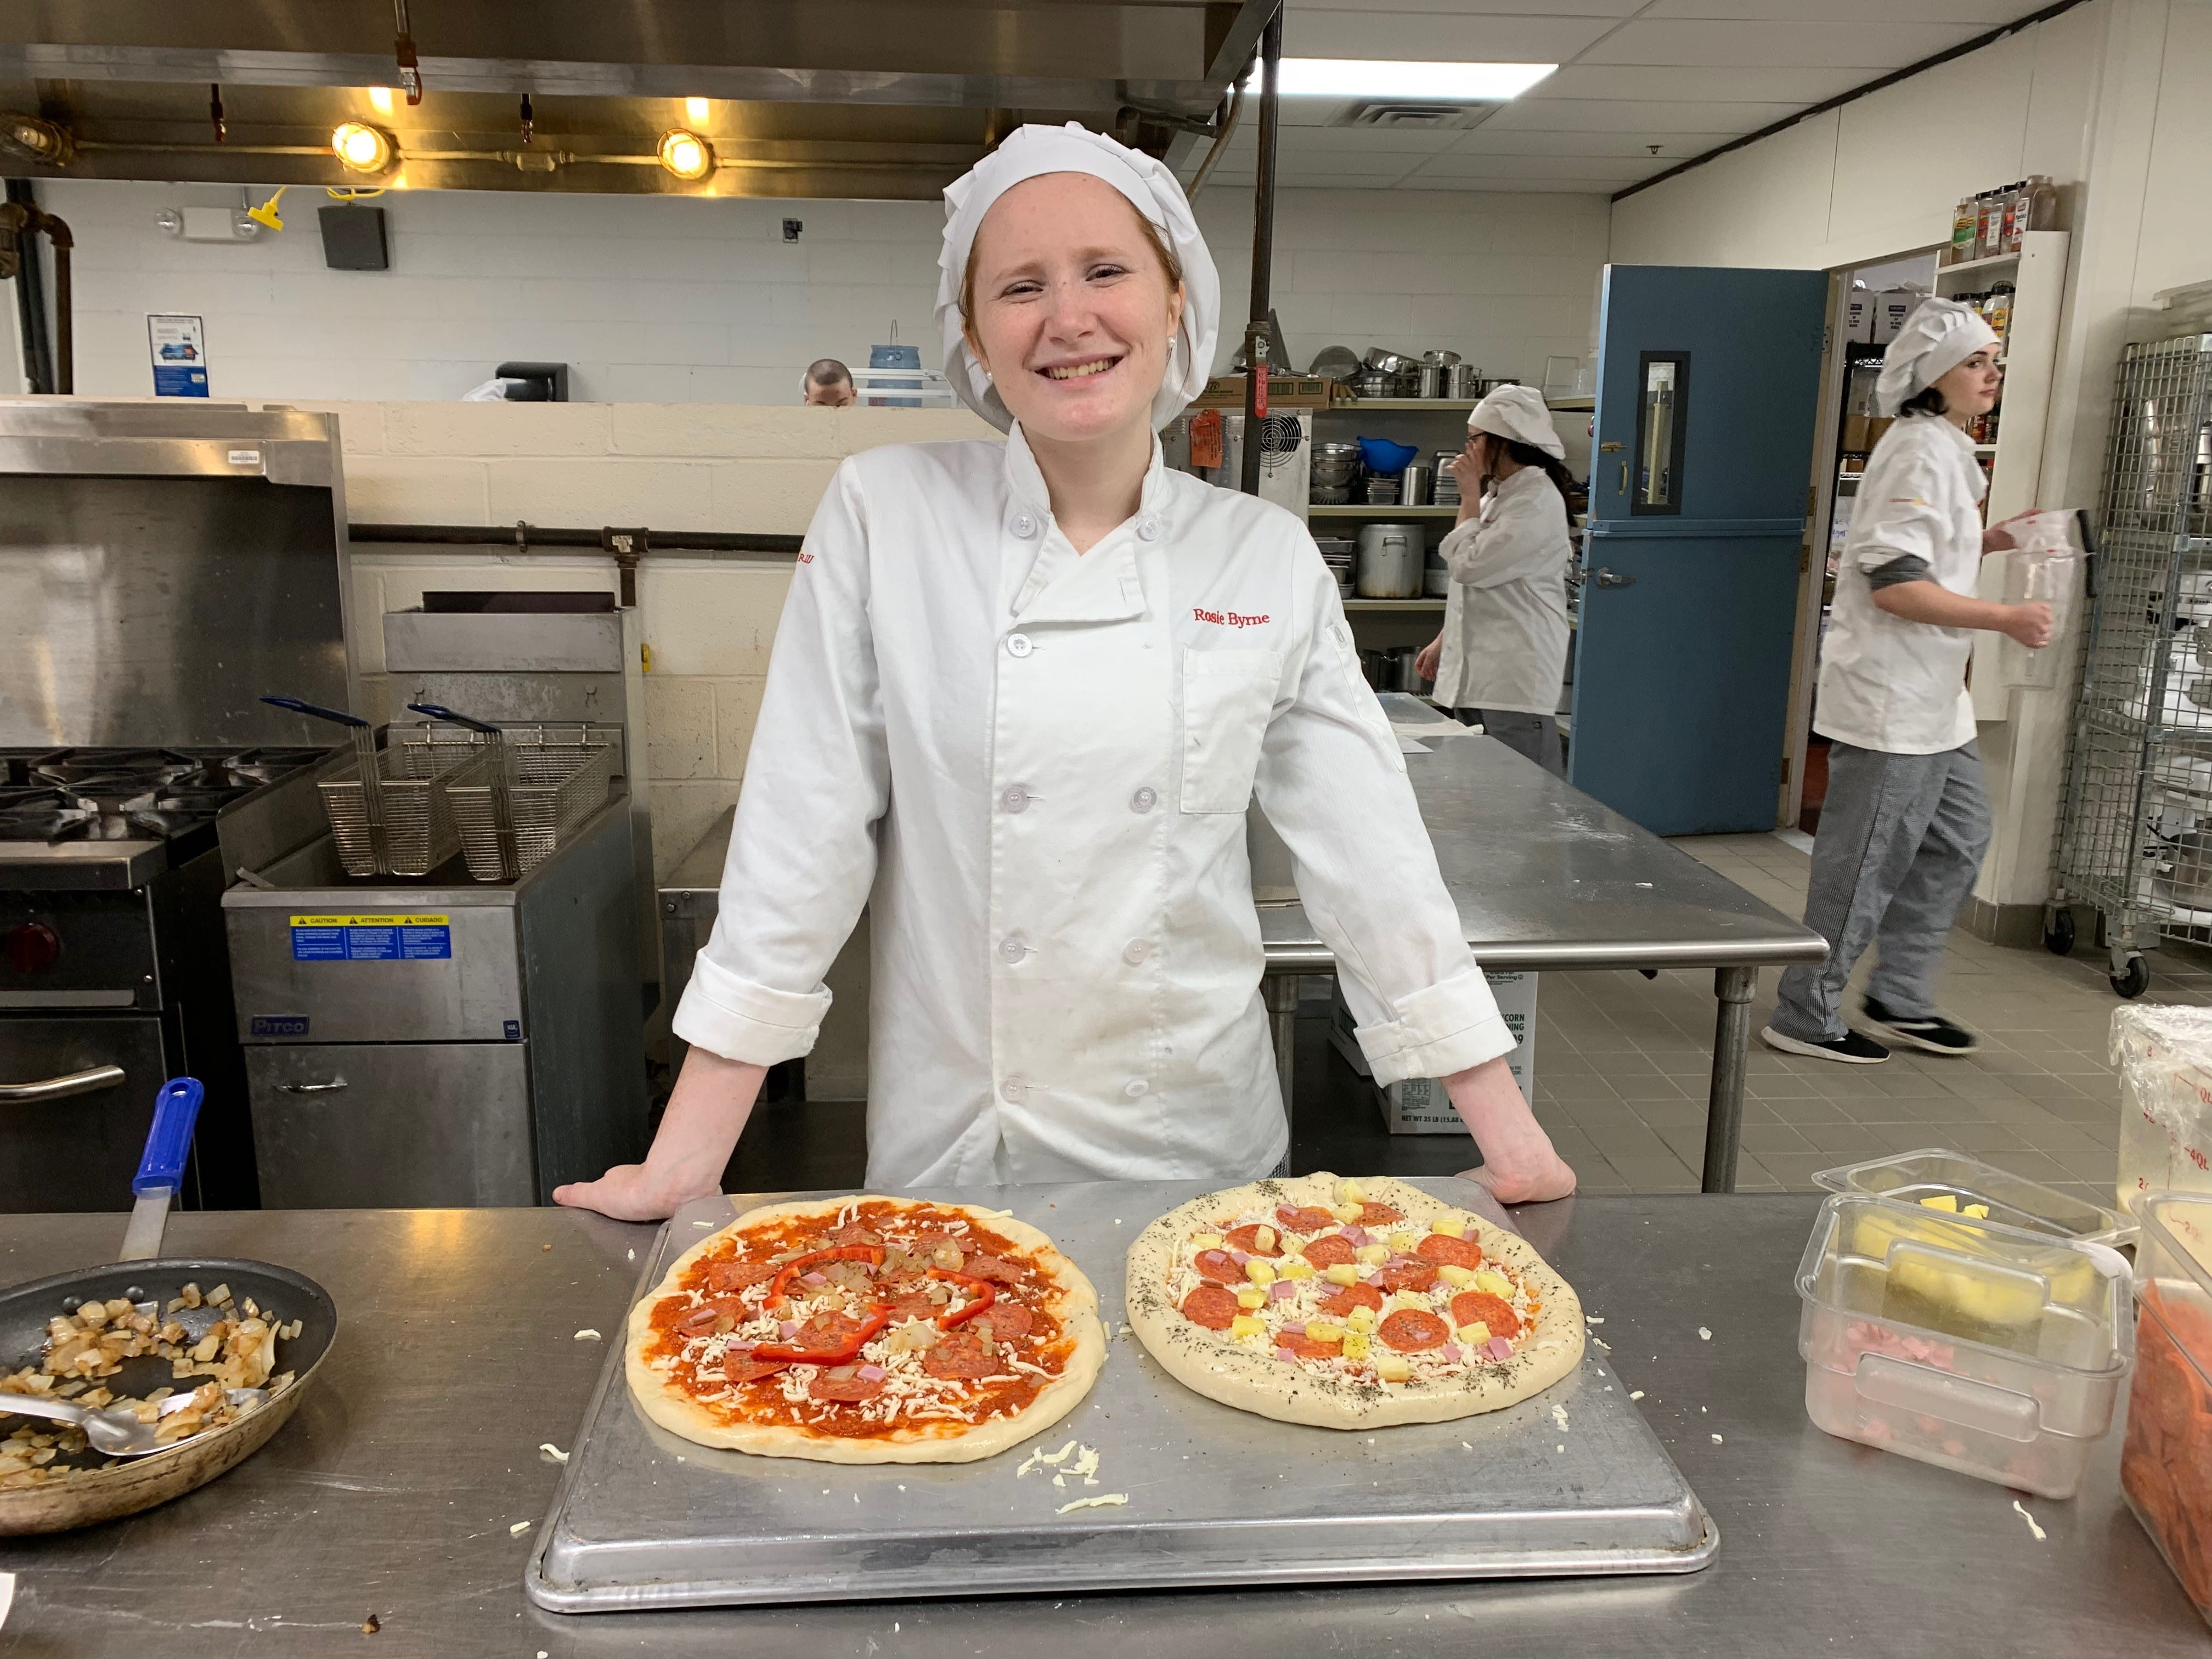 Photo of culinary arts student in kitchen with pizza